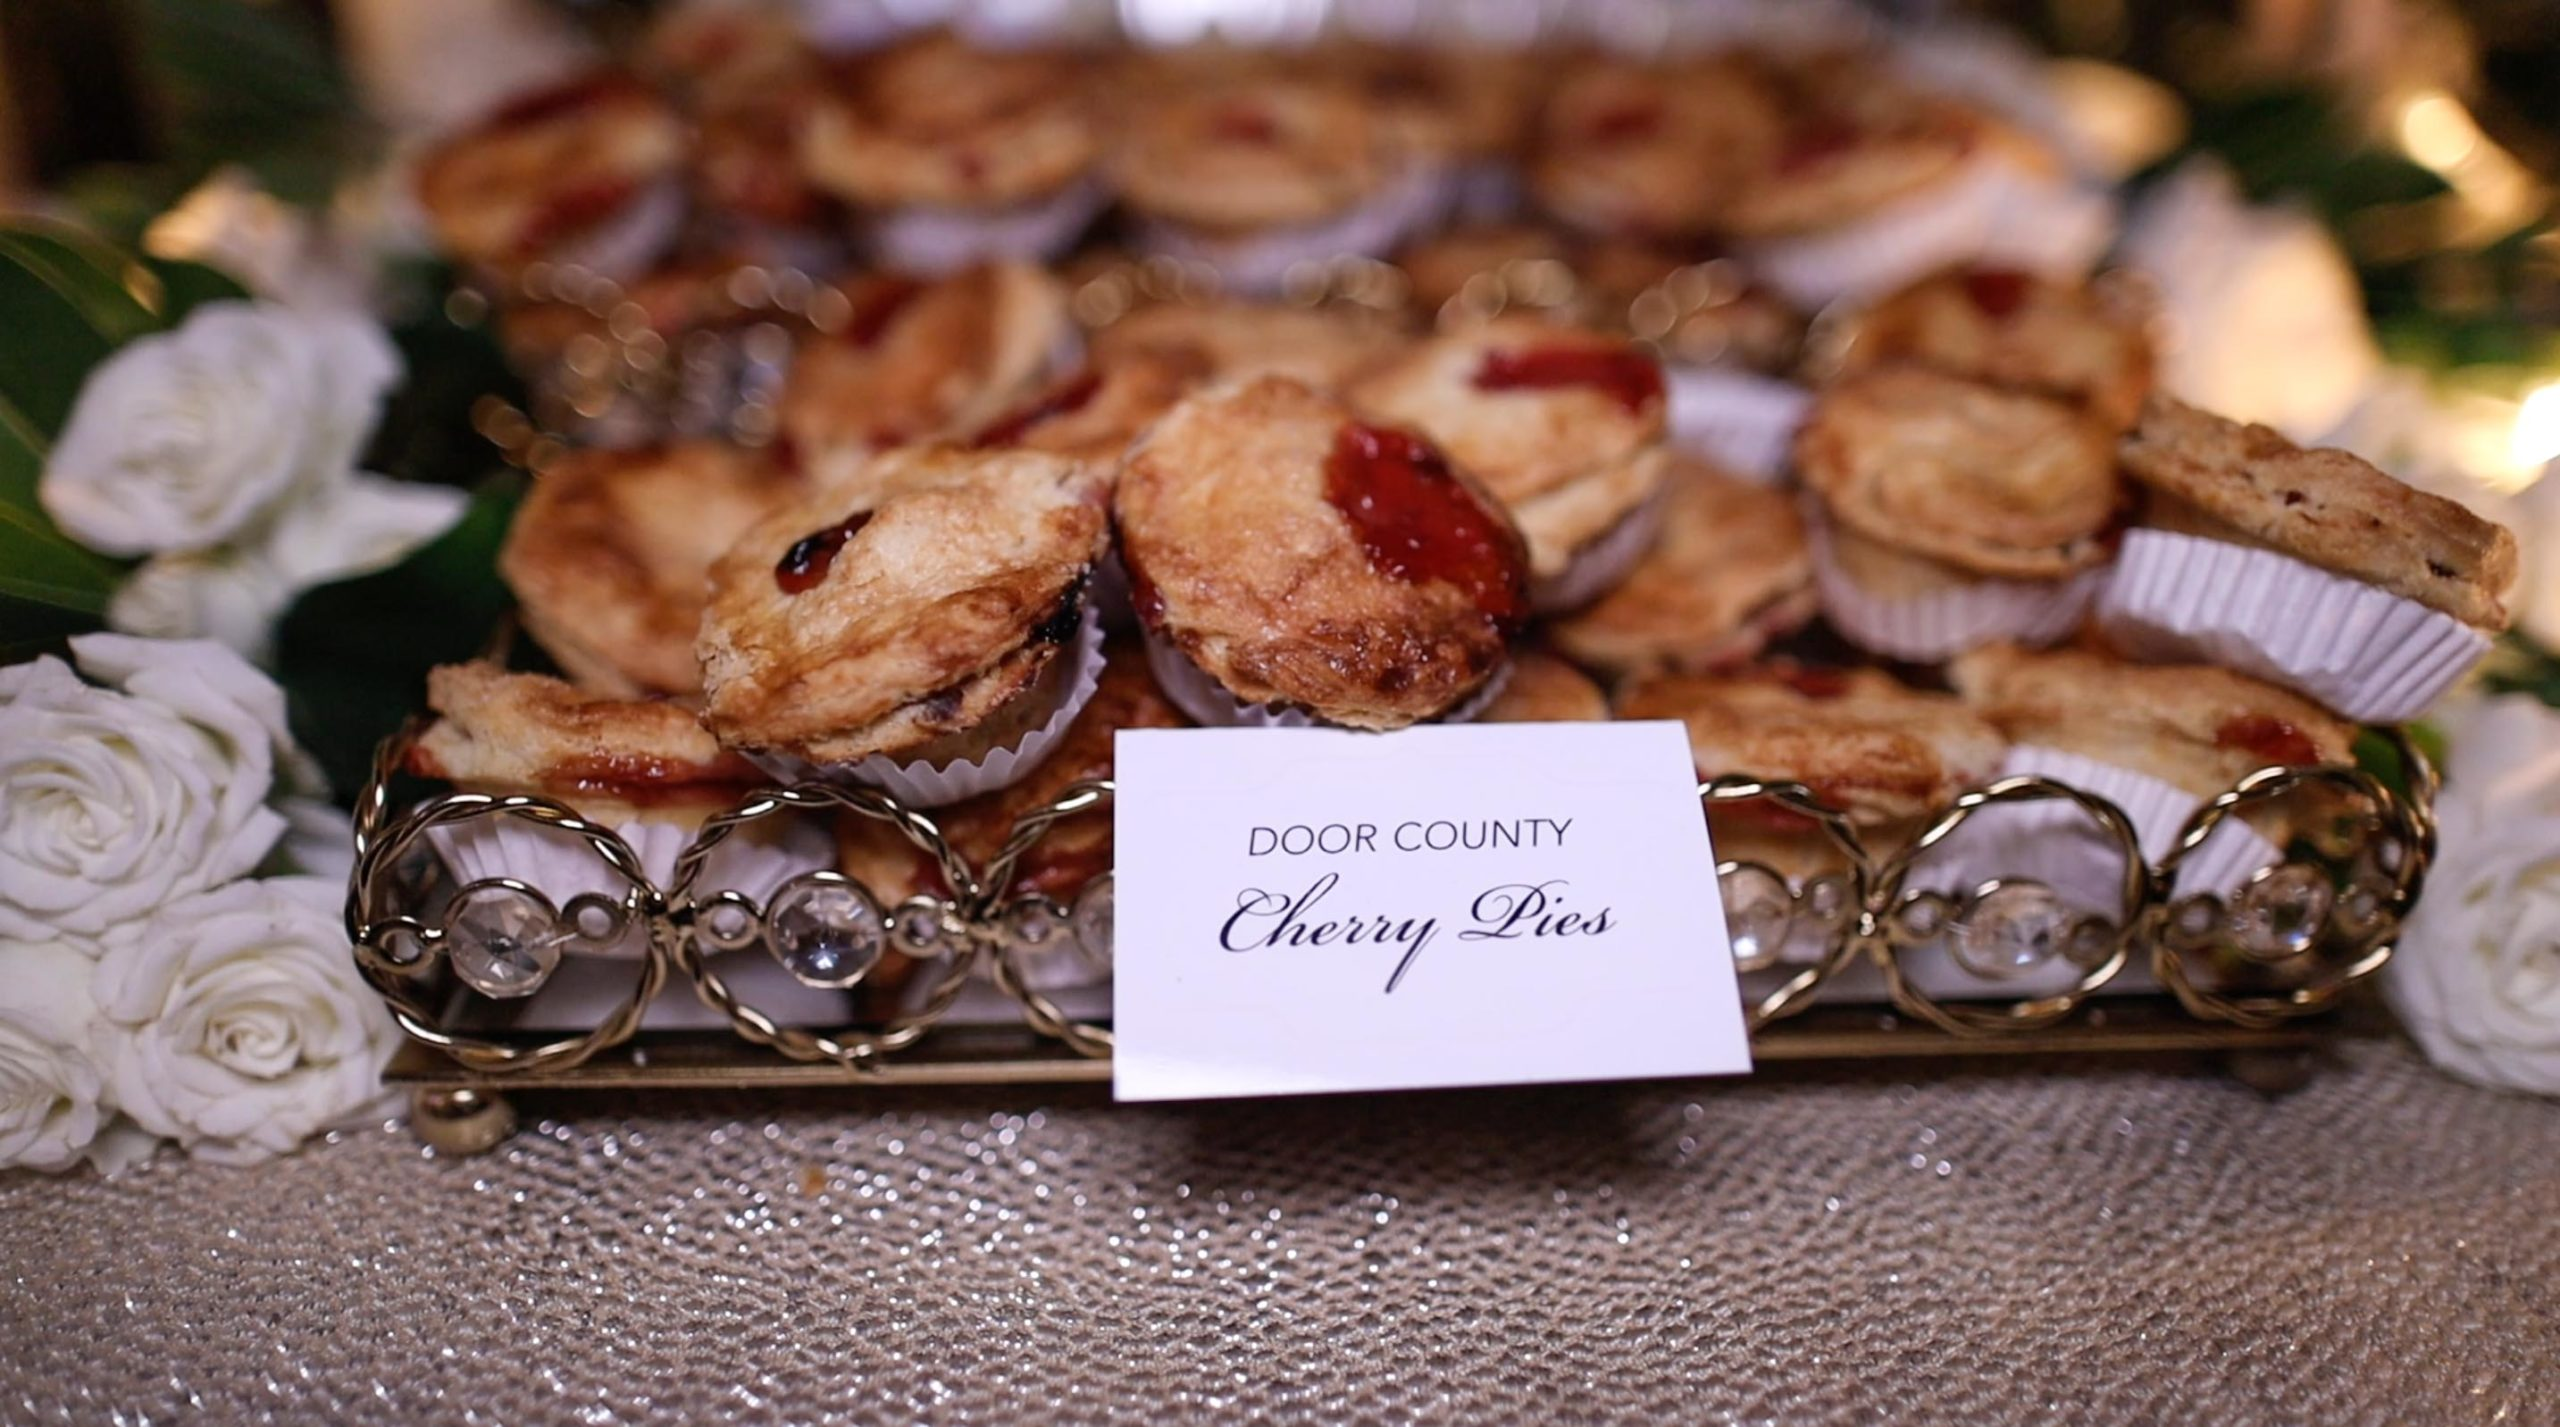 Tiny cherry pies served to guests during wequassett wedding